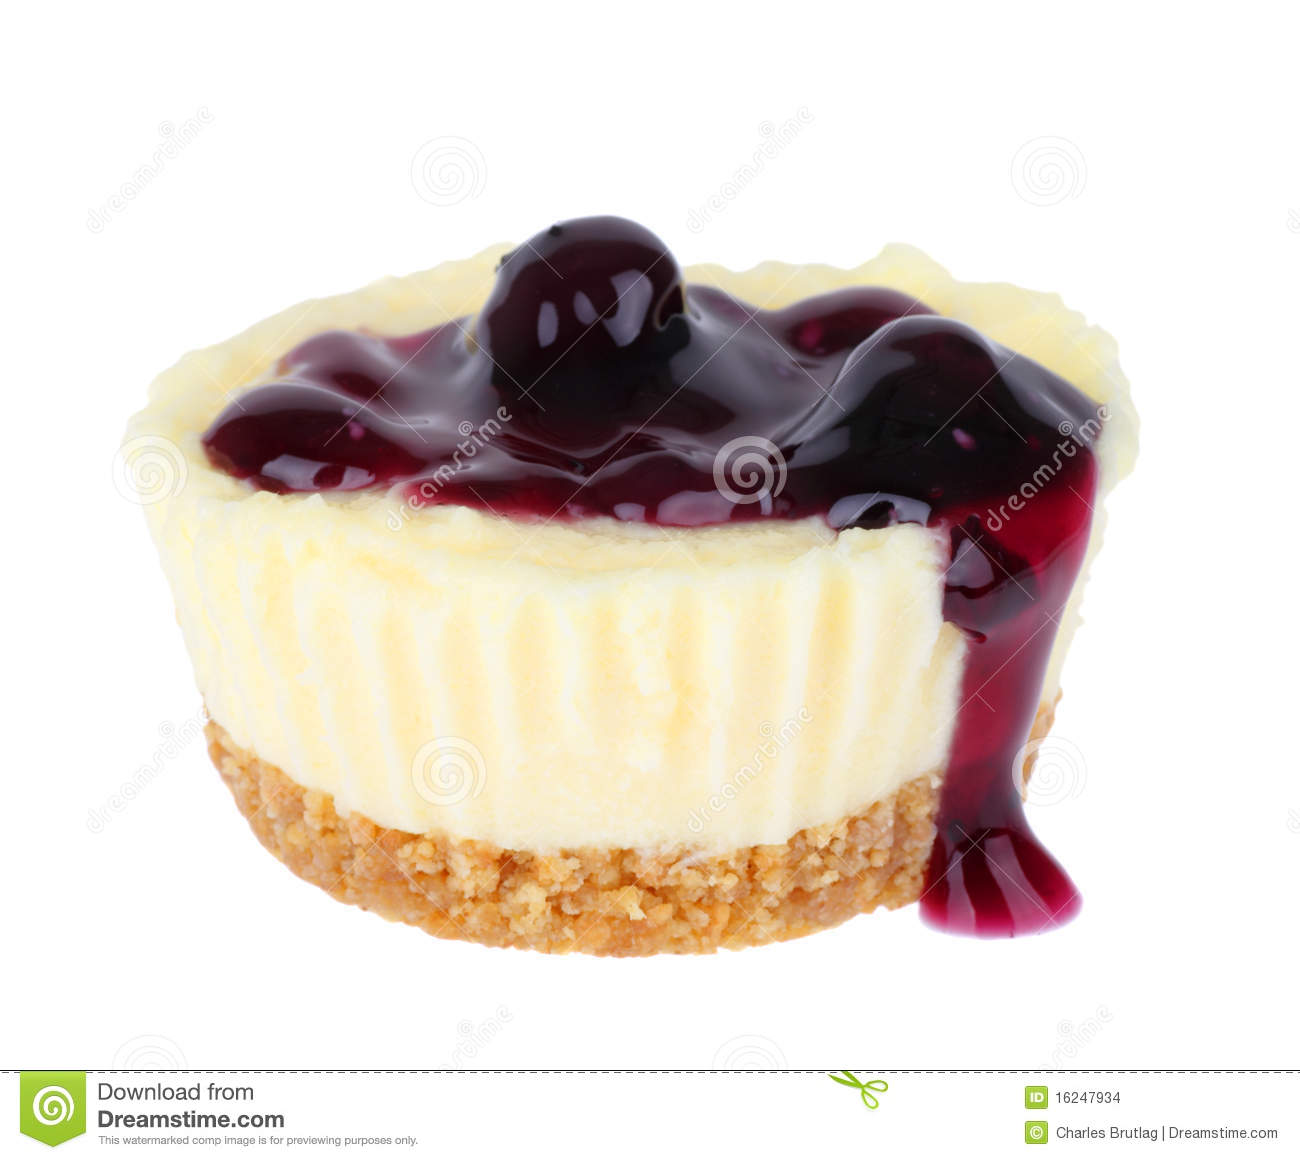 Cheesecake cupcake topped with blueberries isolated on white.